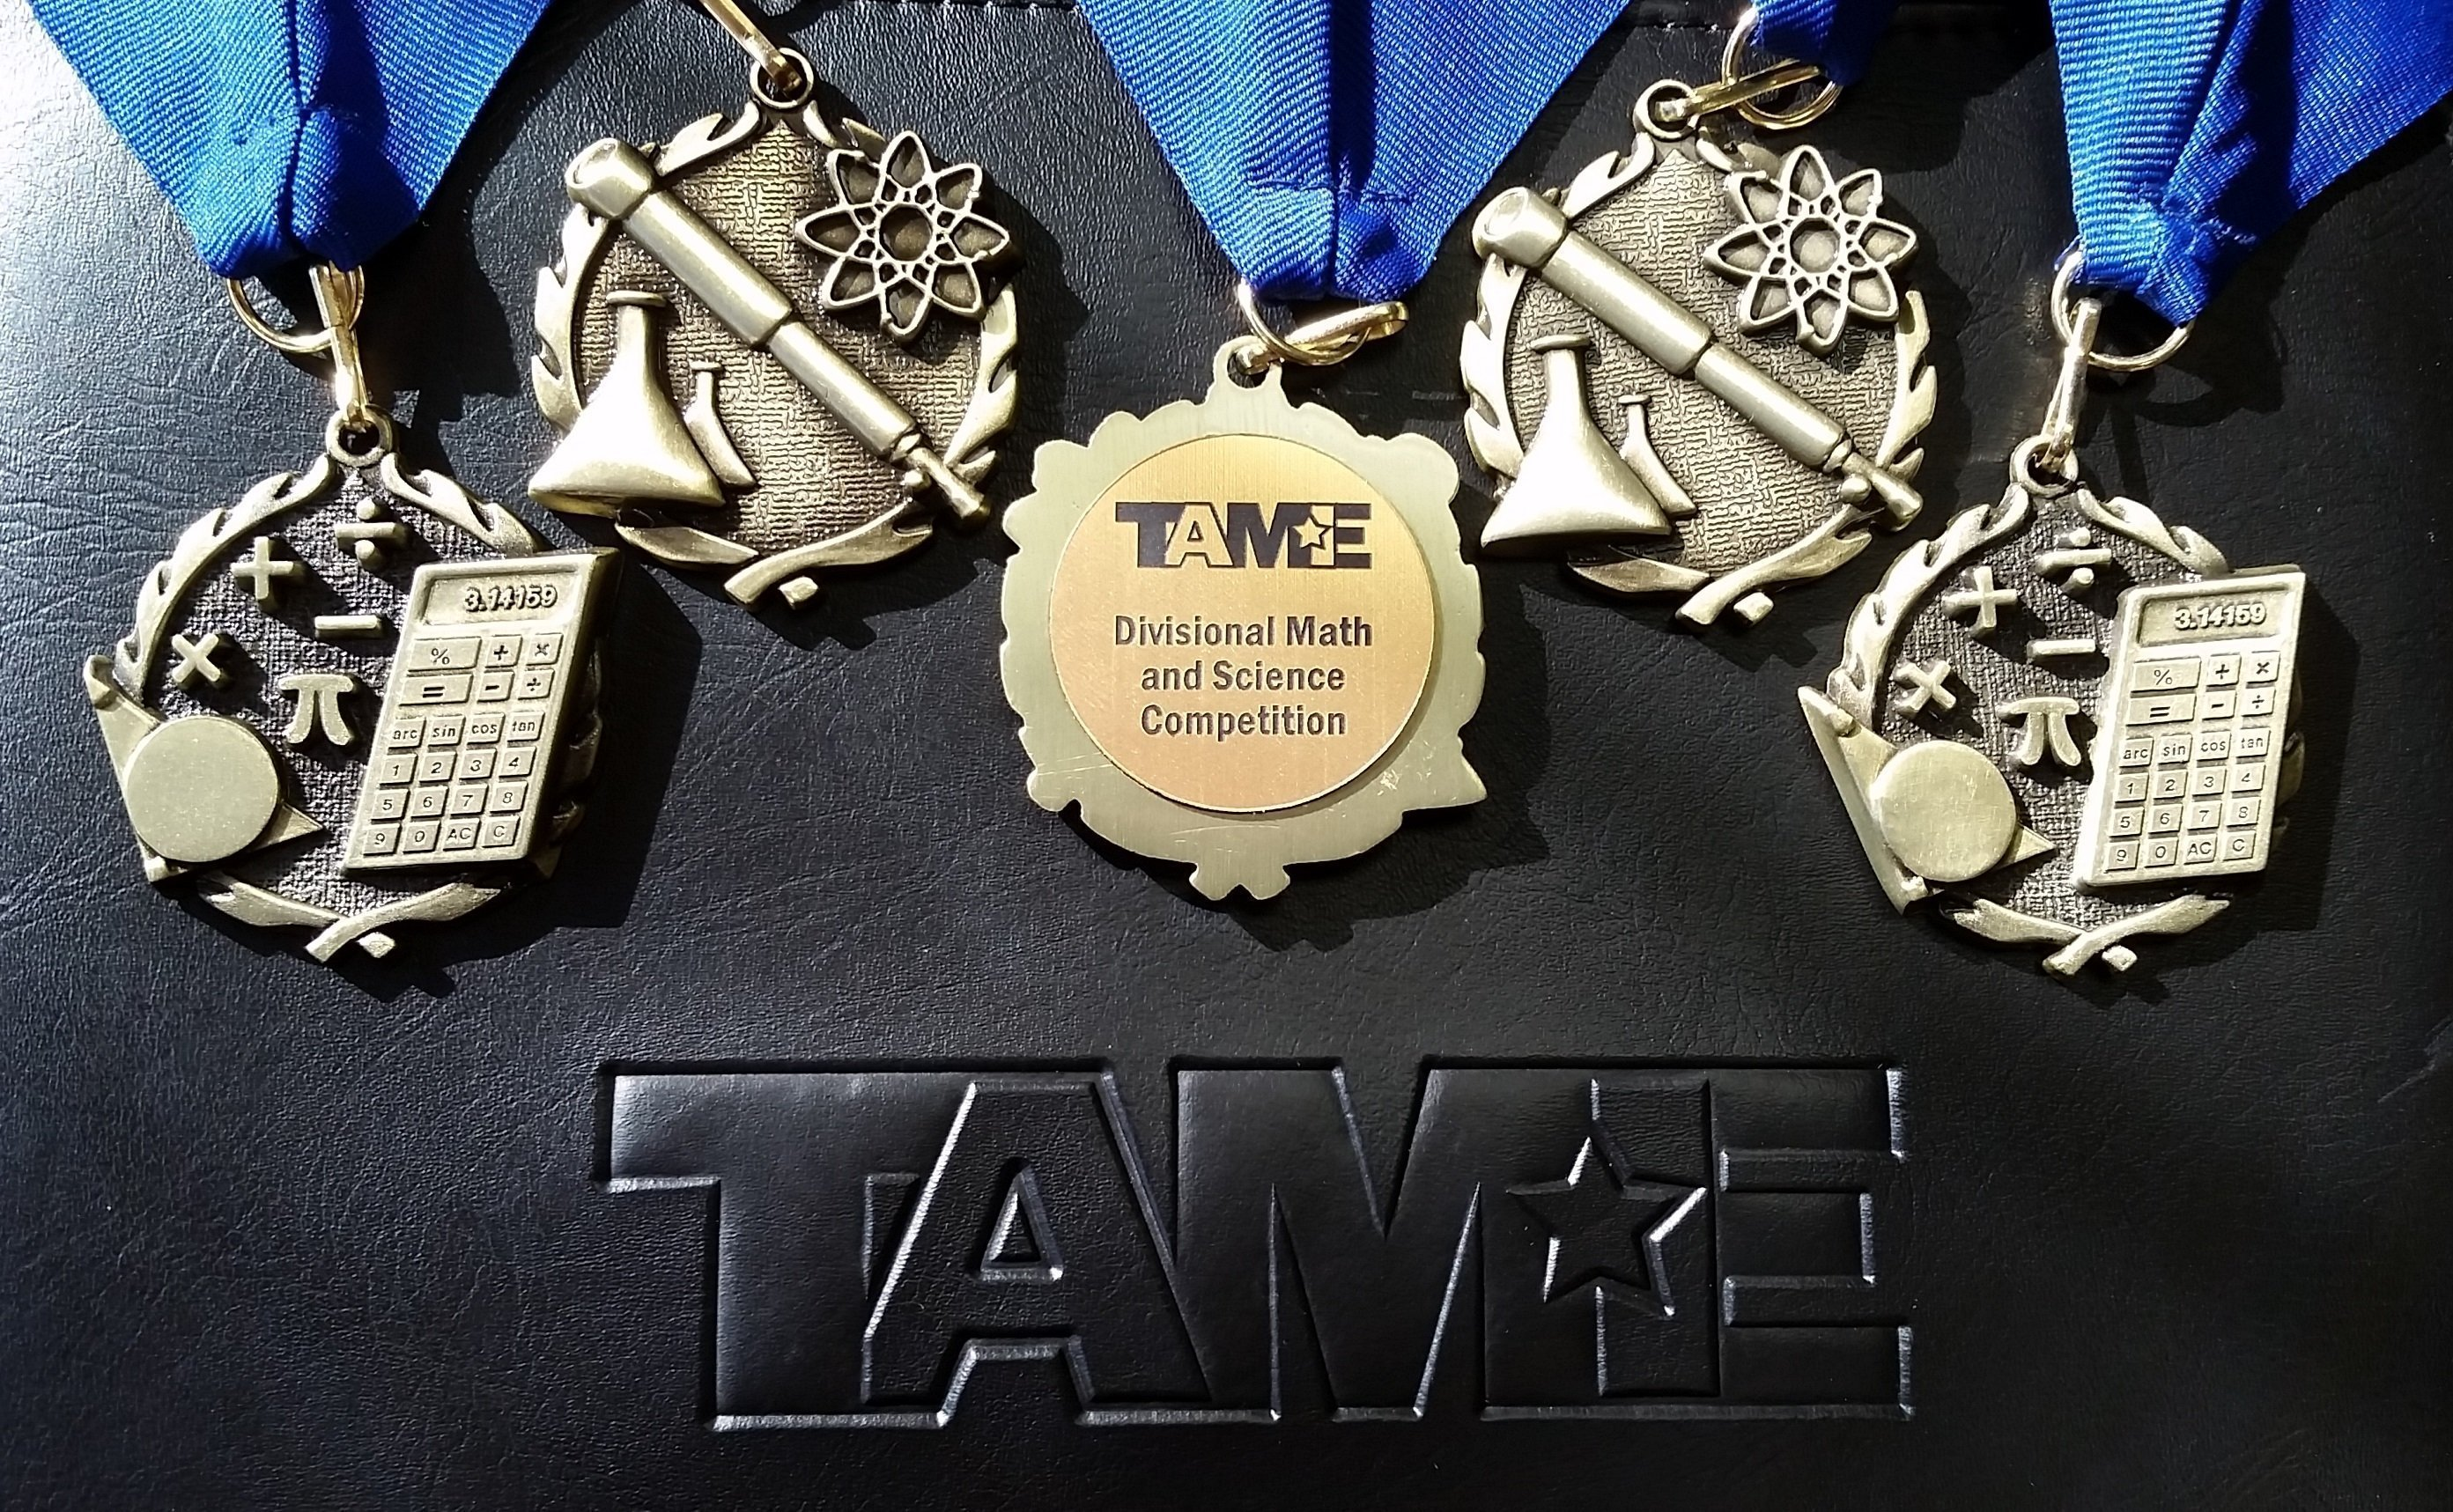 The 2016 TAME Dallas STEM Competition was hosted at Tarrant County College on Saturday February 6, 2016.